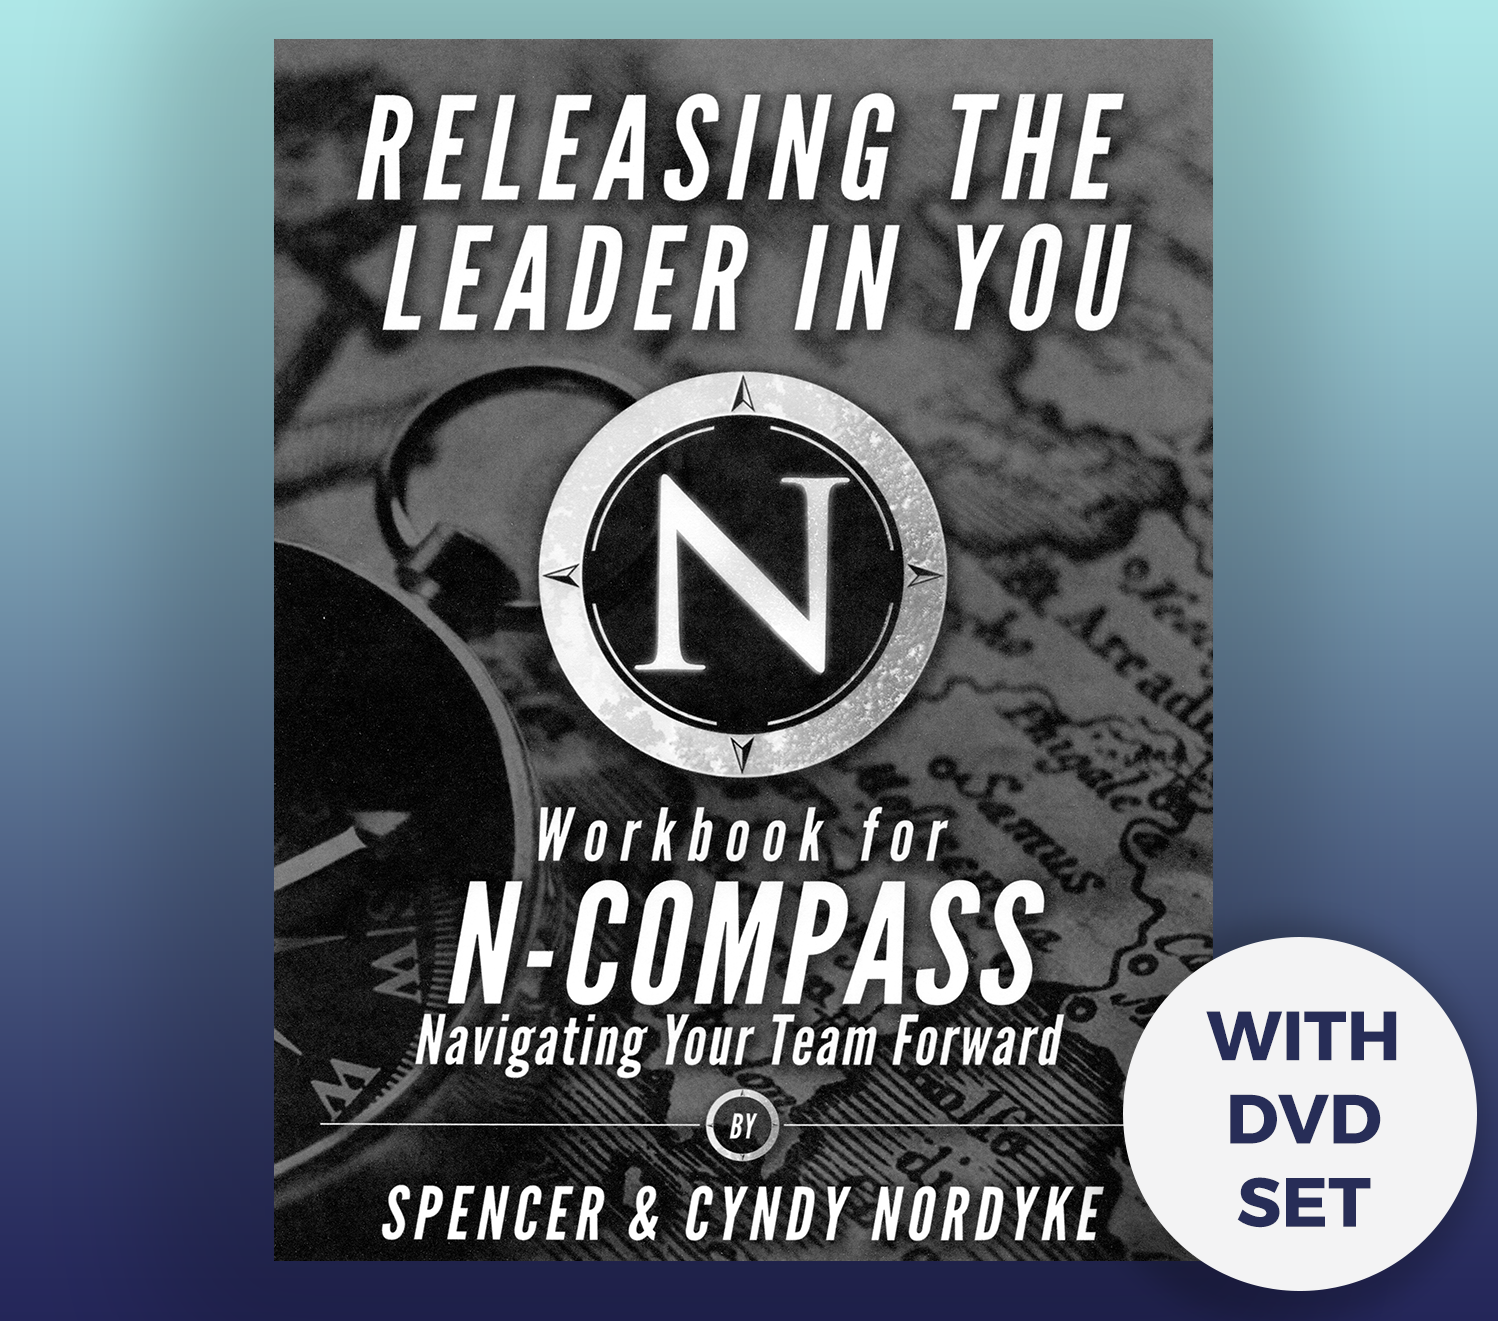 Releasing the Leader in You Notebook & 4 – DVD  set